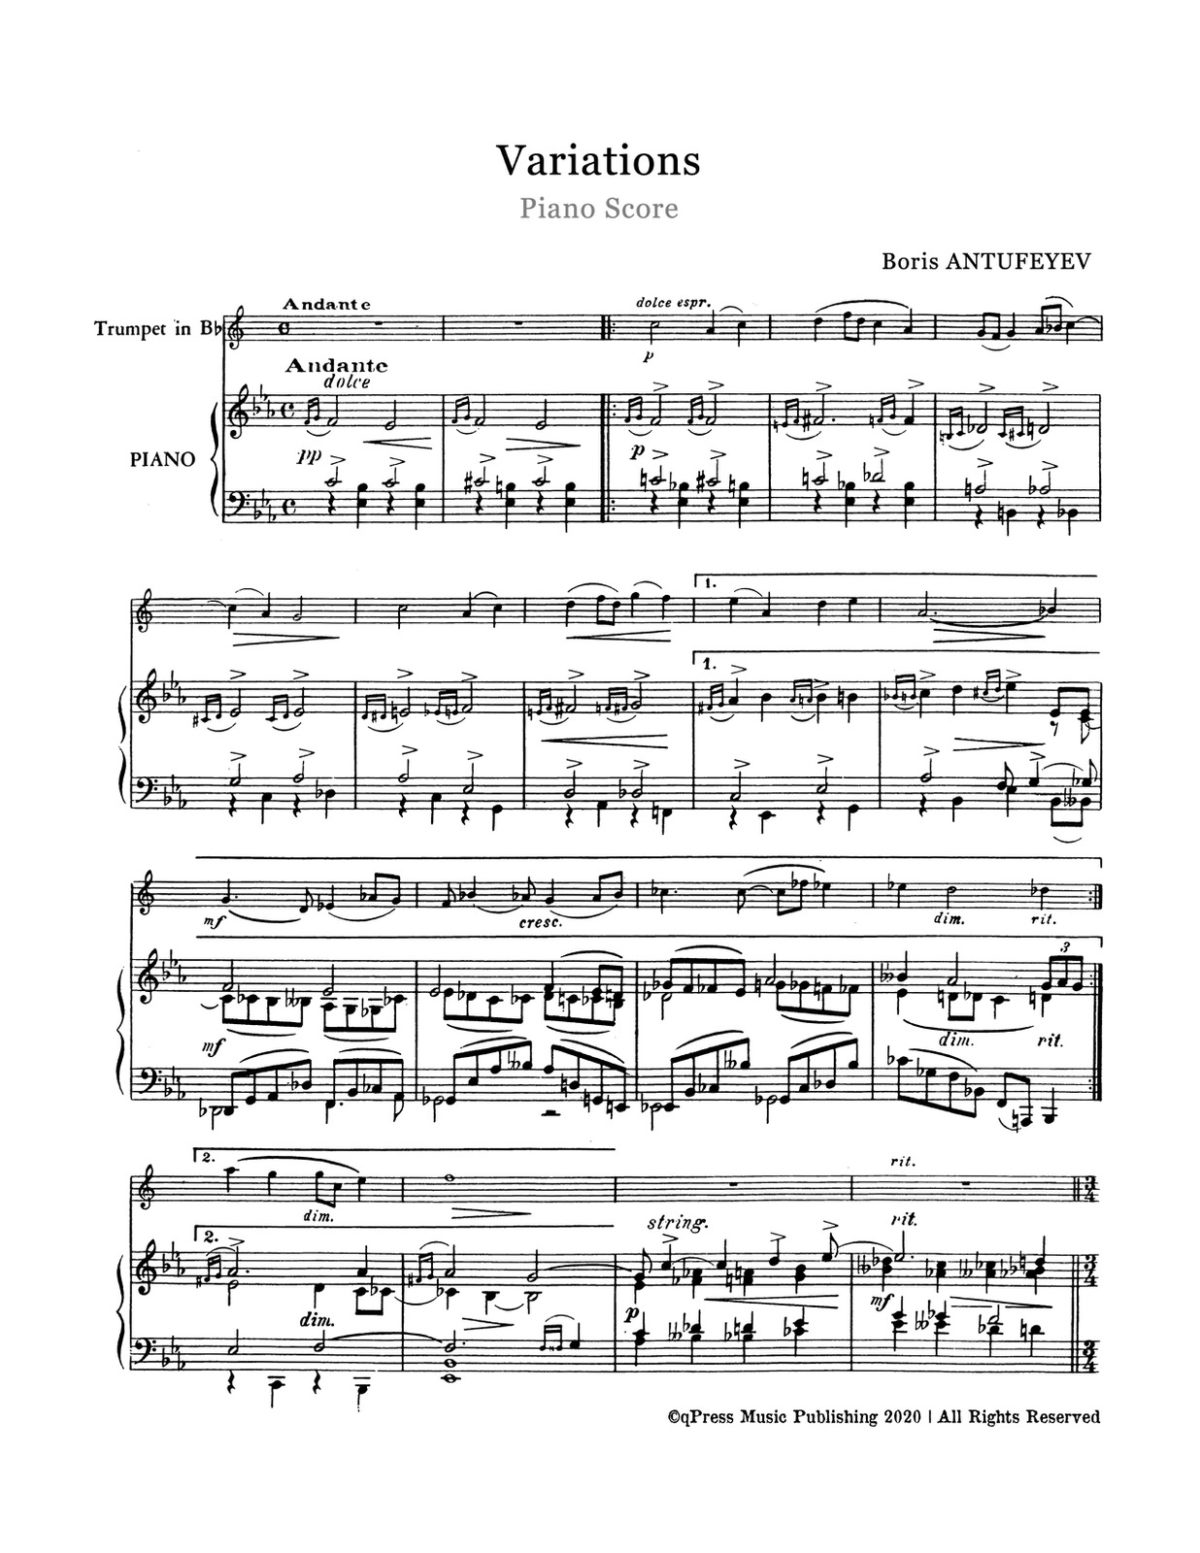 Antufeyev, Boris, Variations for Trumpet and Piano-p06